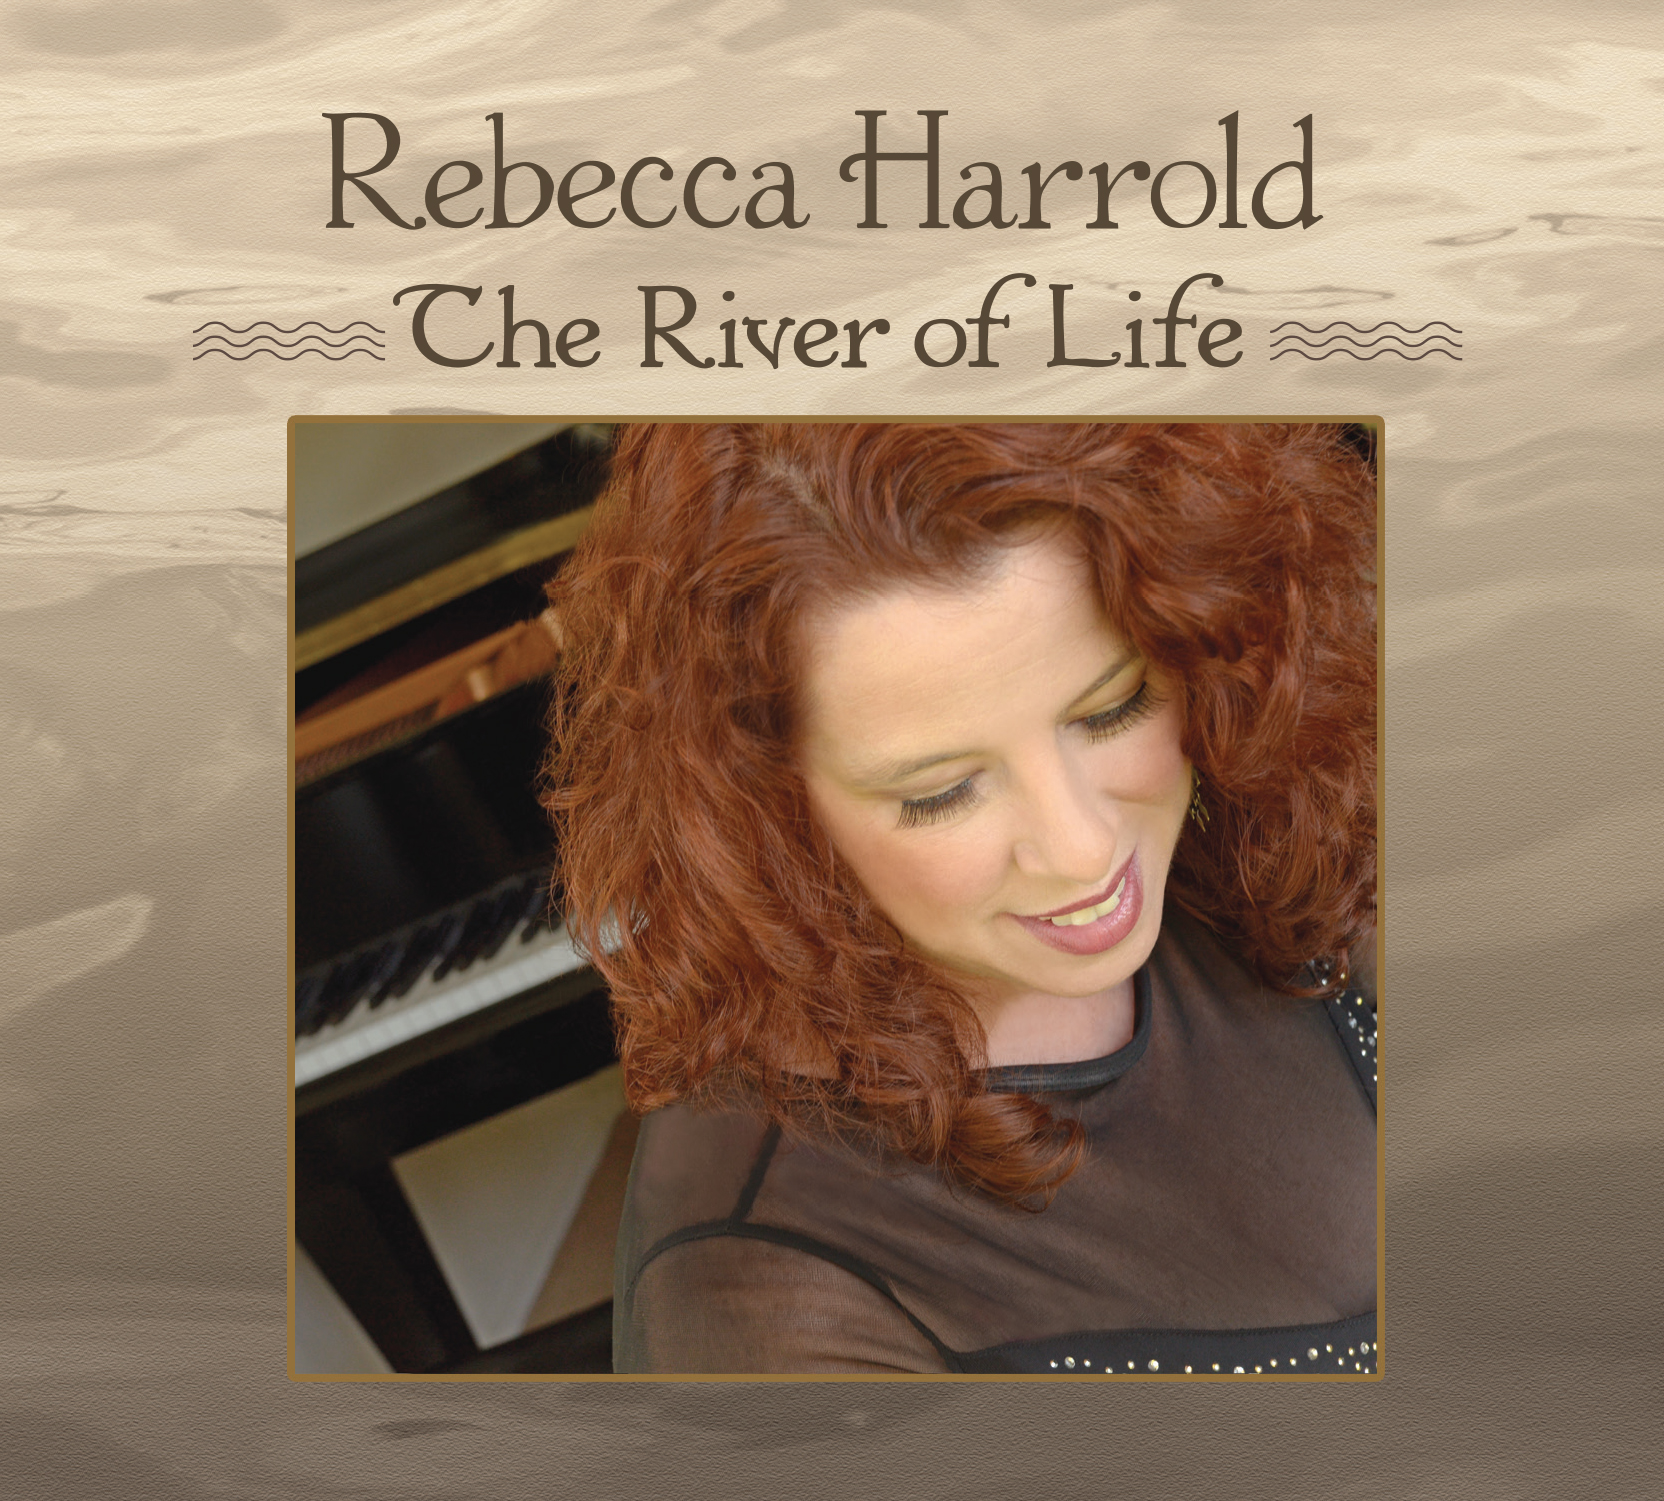 Rebecca-Harrold-HiRes-Cover_photo-by-Irene-Young.jpg